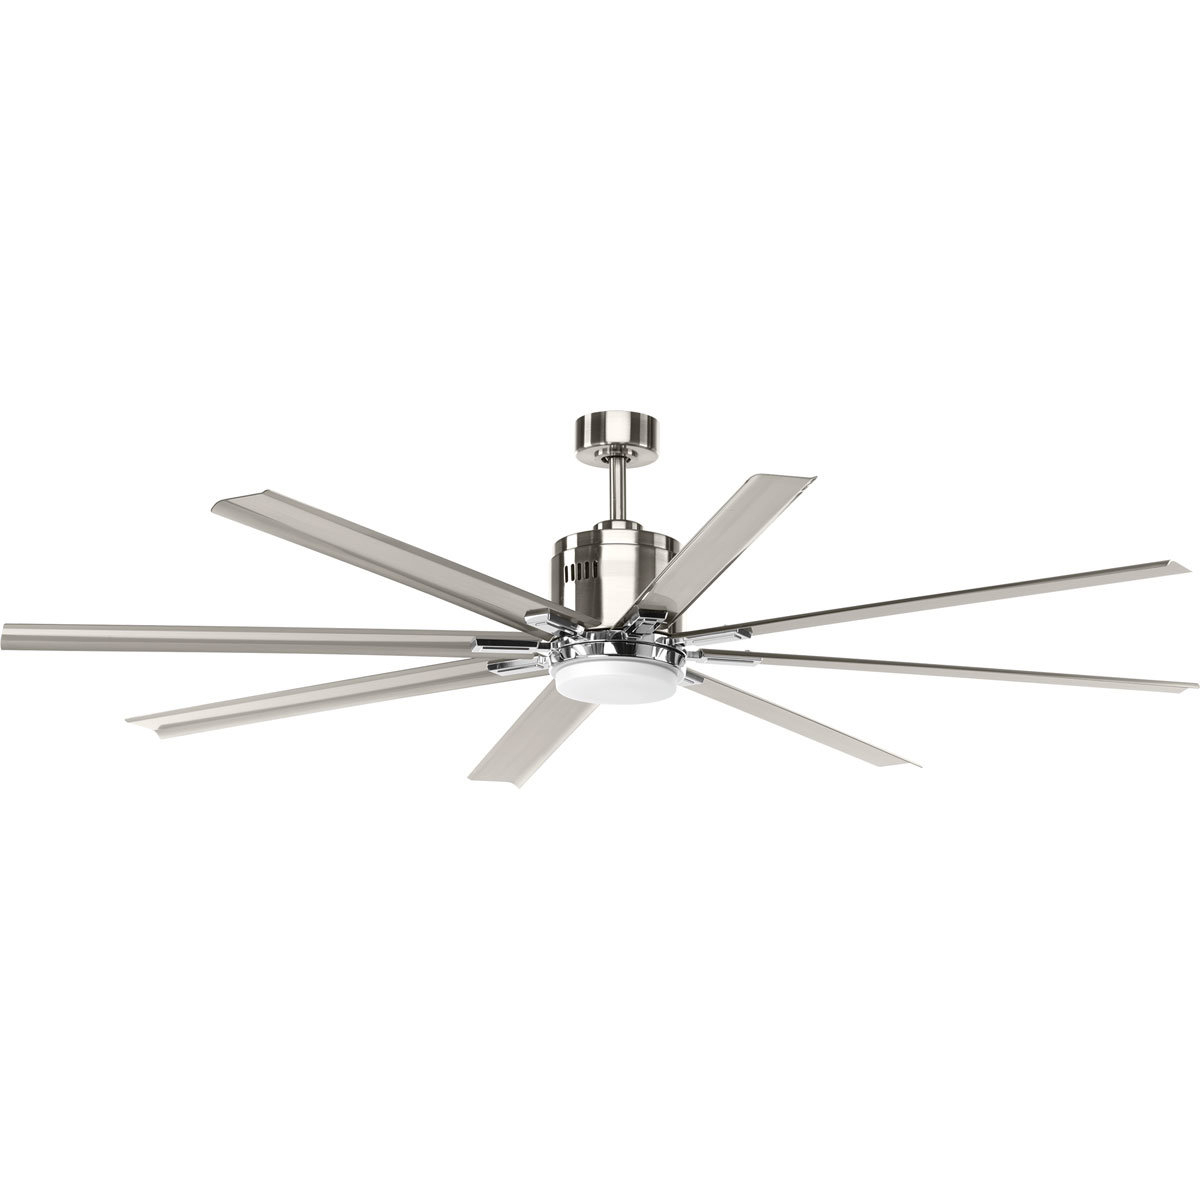 "Bankston 8 Blade Led Ceiling Fans Regarding Most Recently Released 72"" Bankston 8 Blade Led Ceiling Fan With Remote, Light Kit Included (View 3 of 20)"